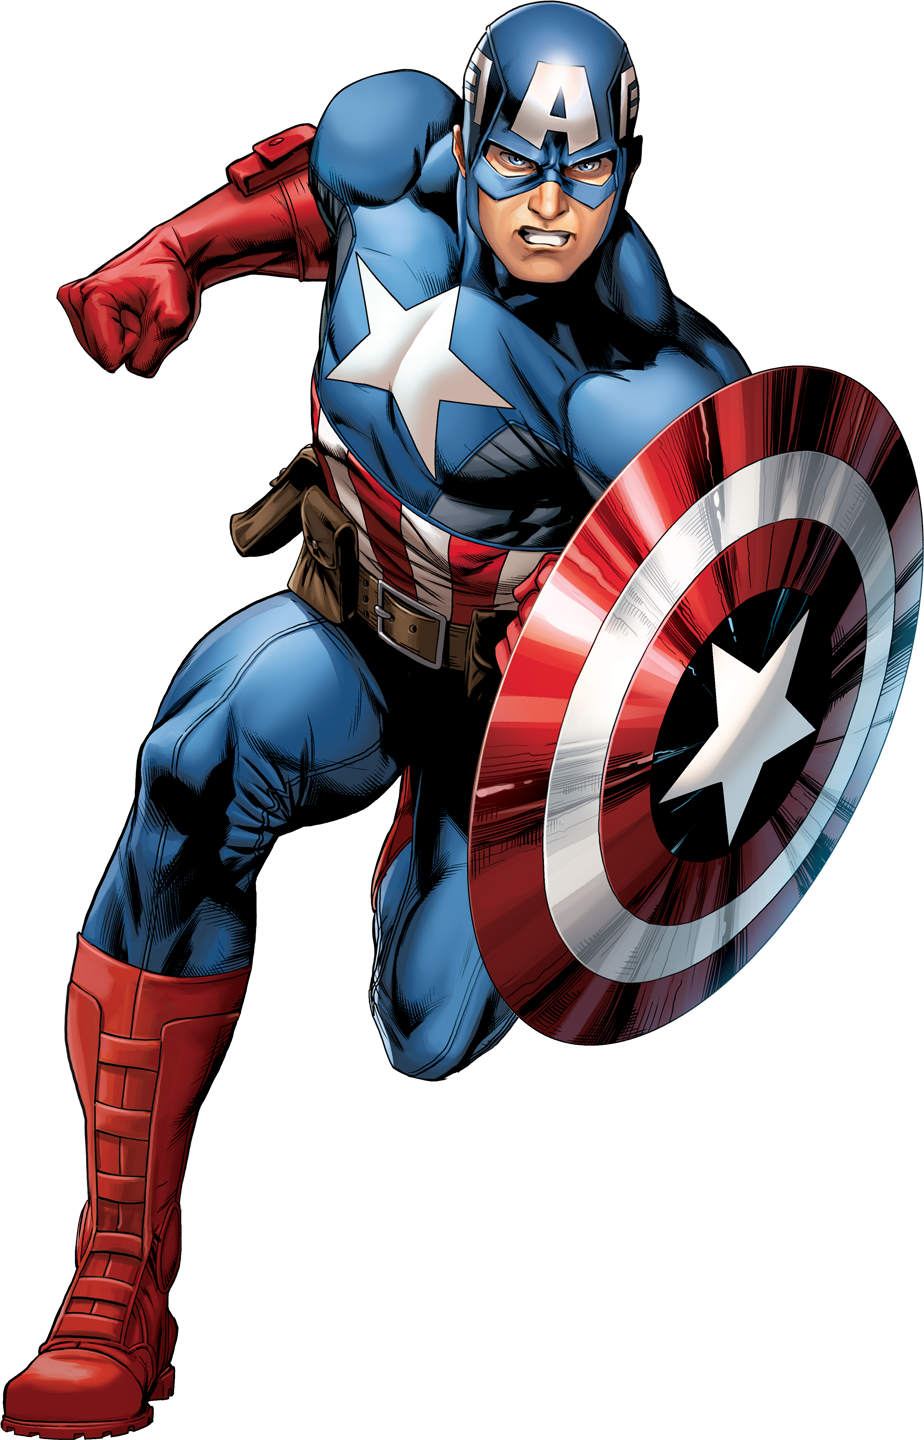 Captain america cartoon png. Image marvel s avengers